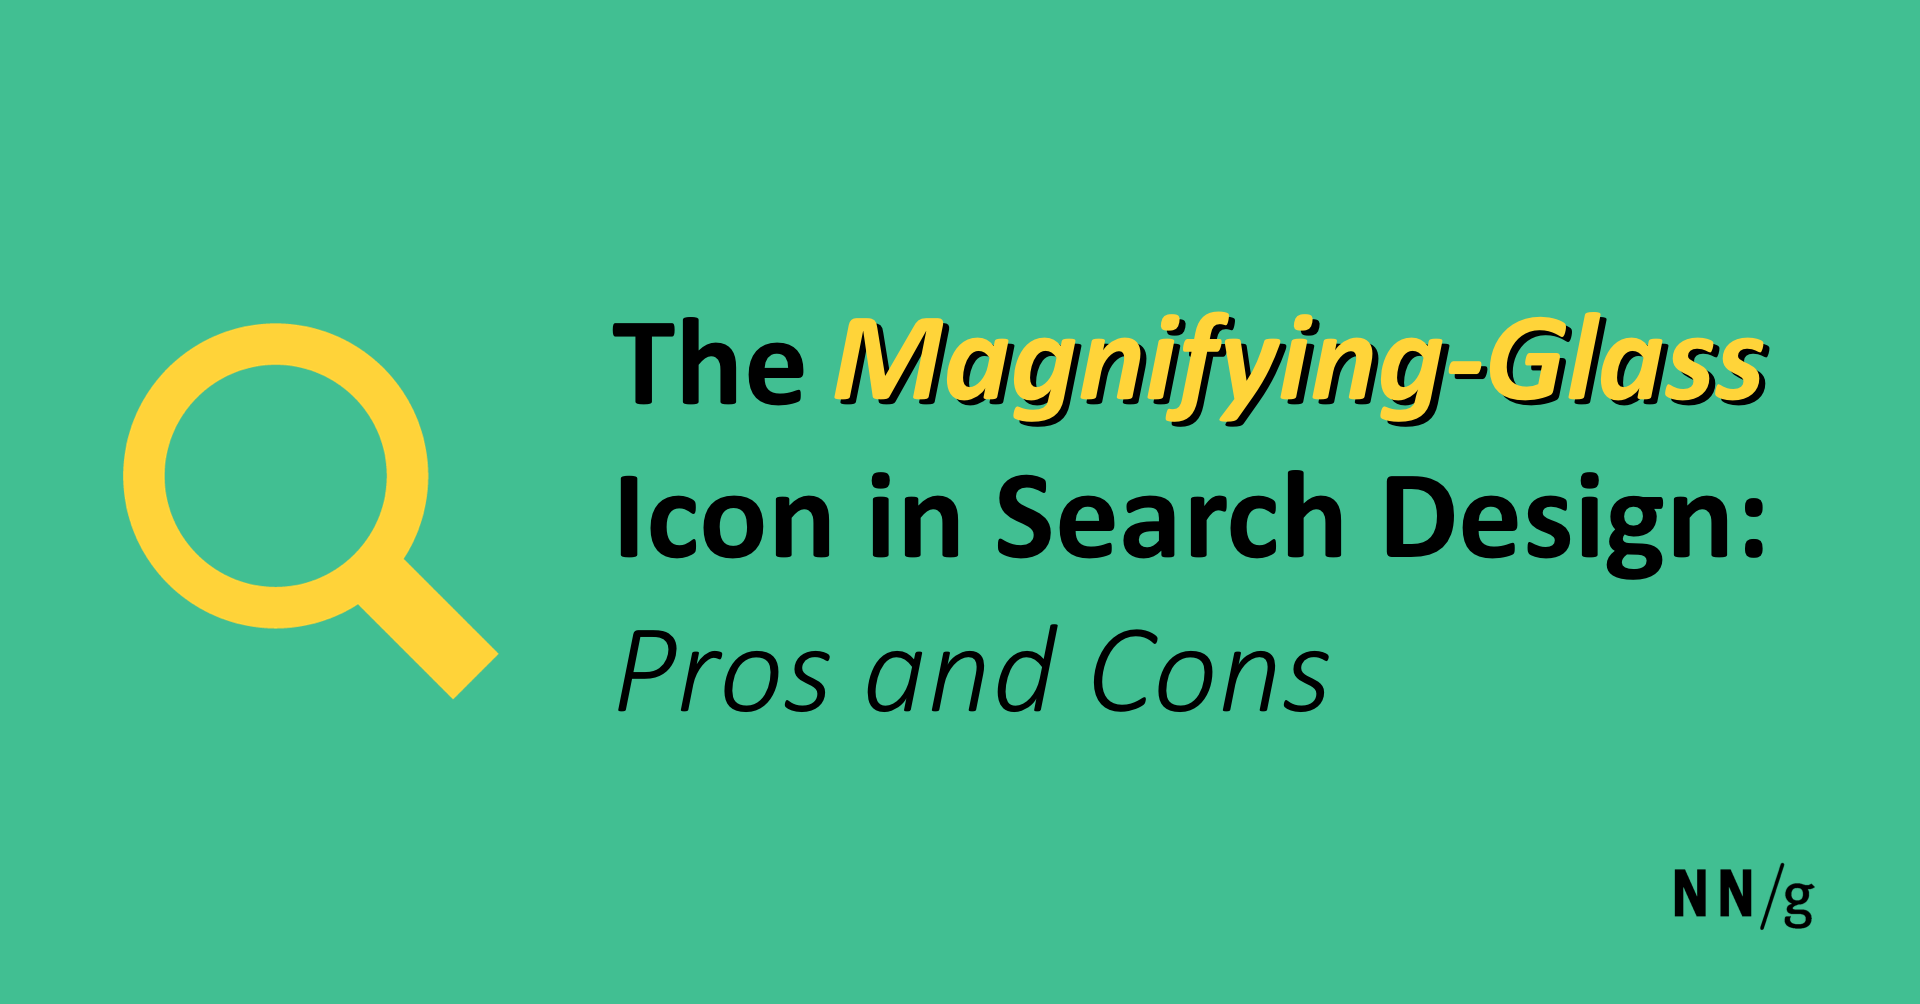 The Magnifying Glass Icon In Search Design Pros And Cons